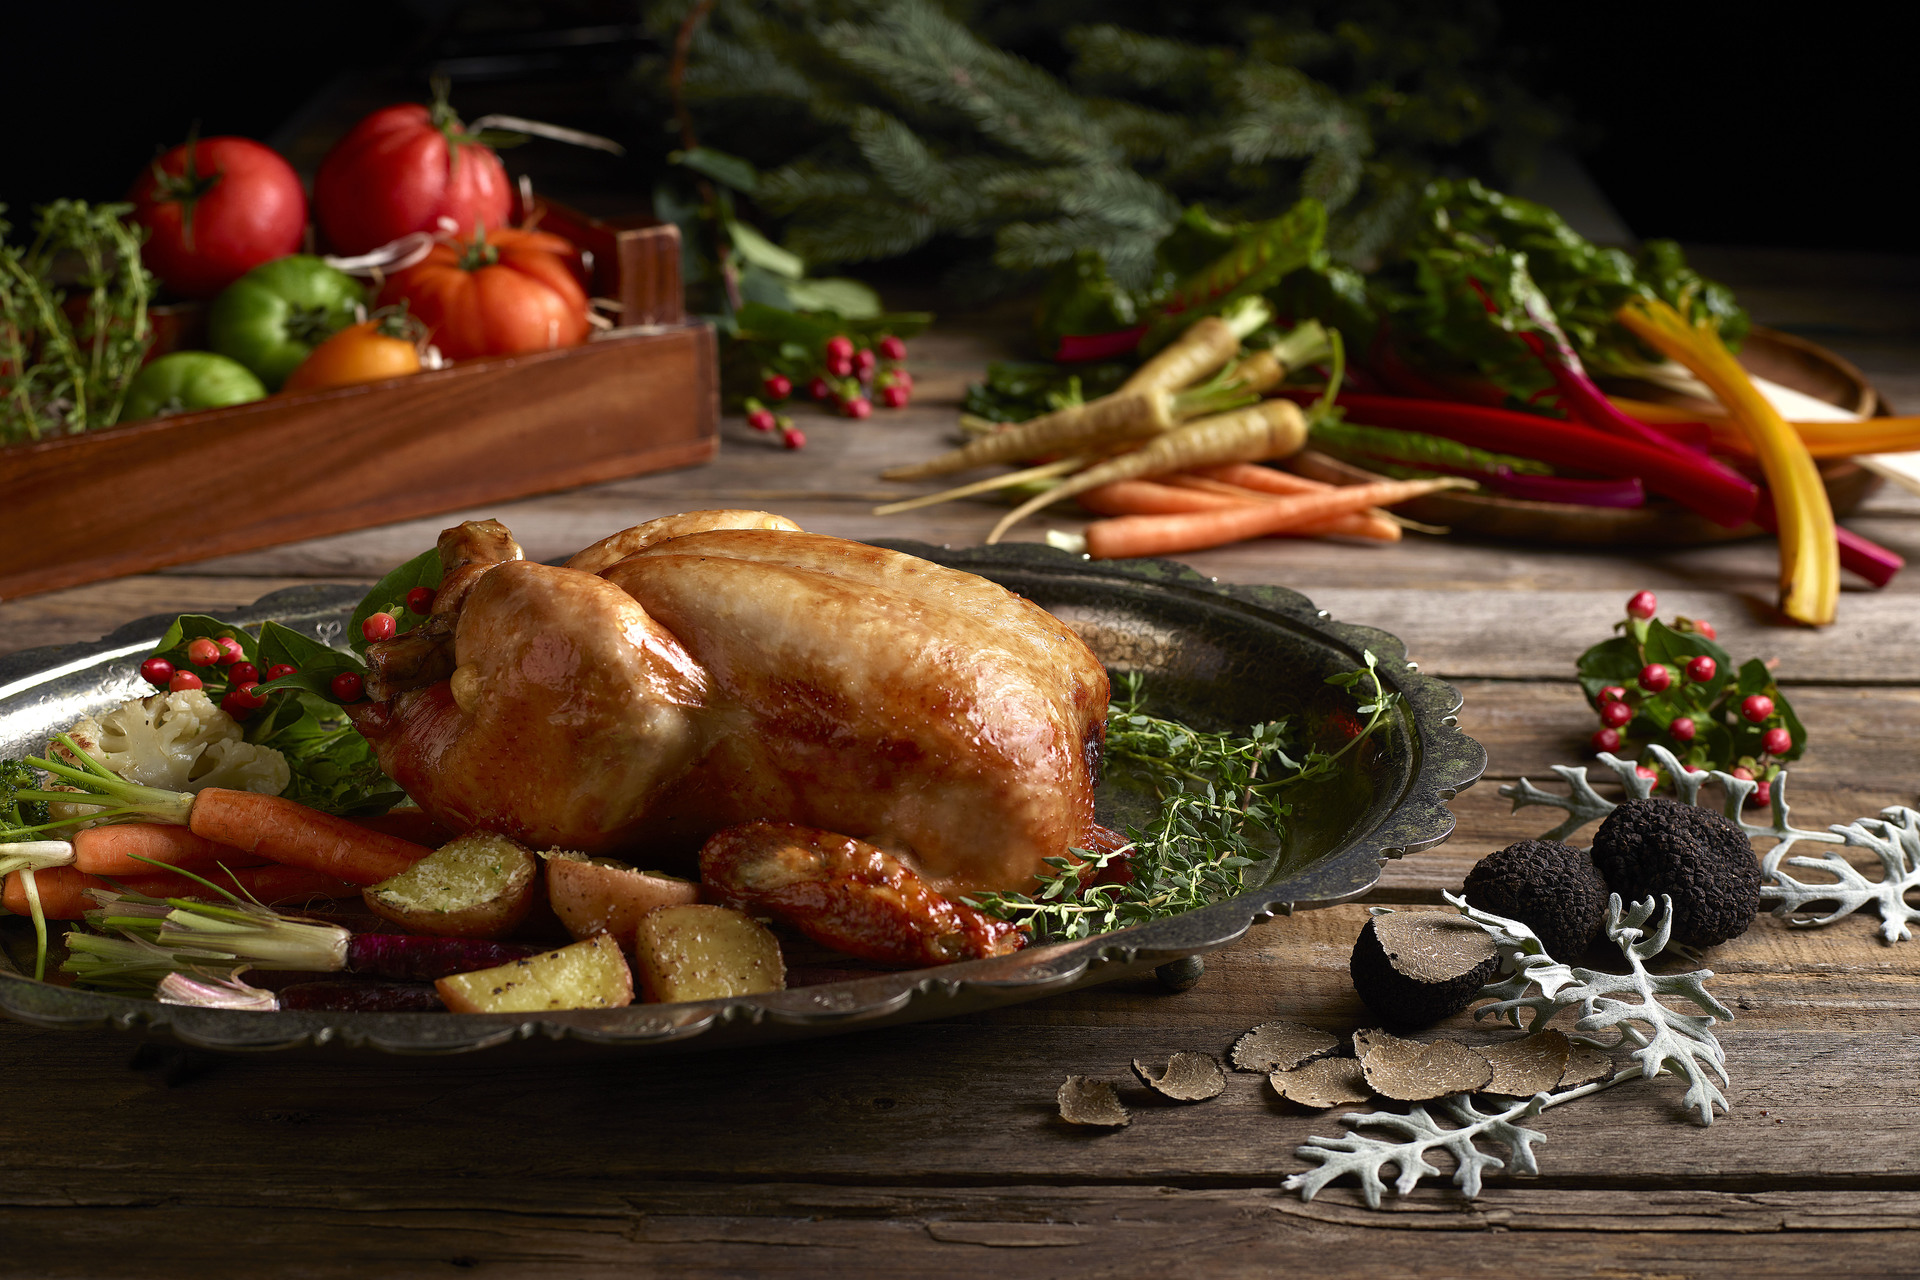 Festive Takeaway from The Carvery -  Roast Chicken with Truffle